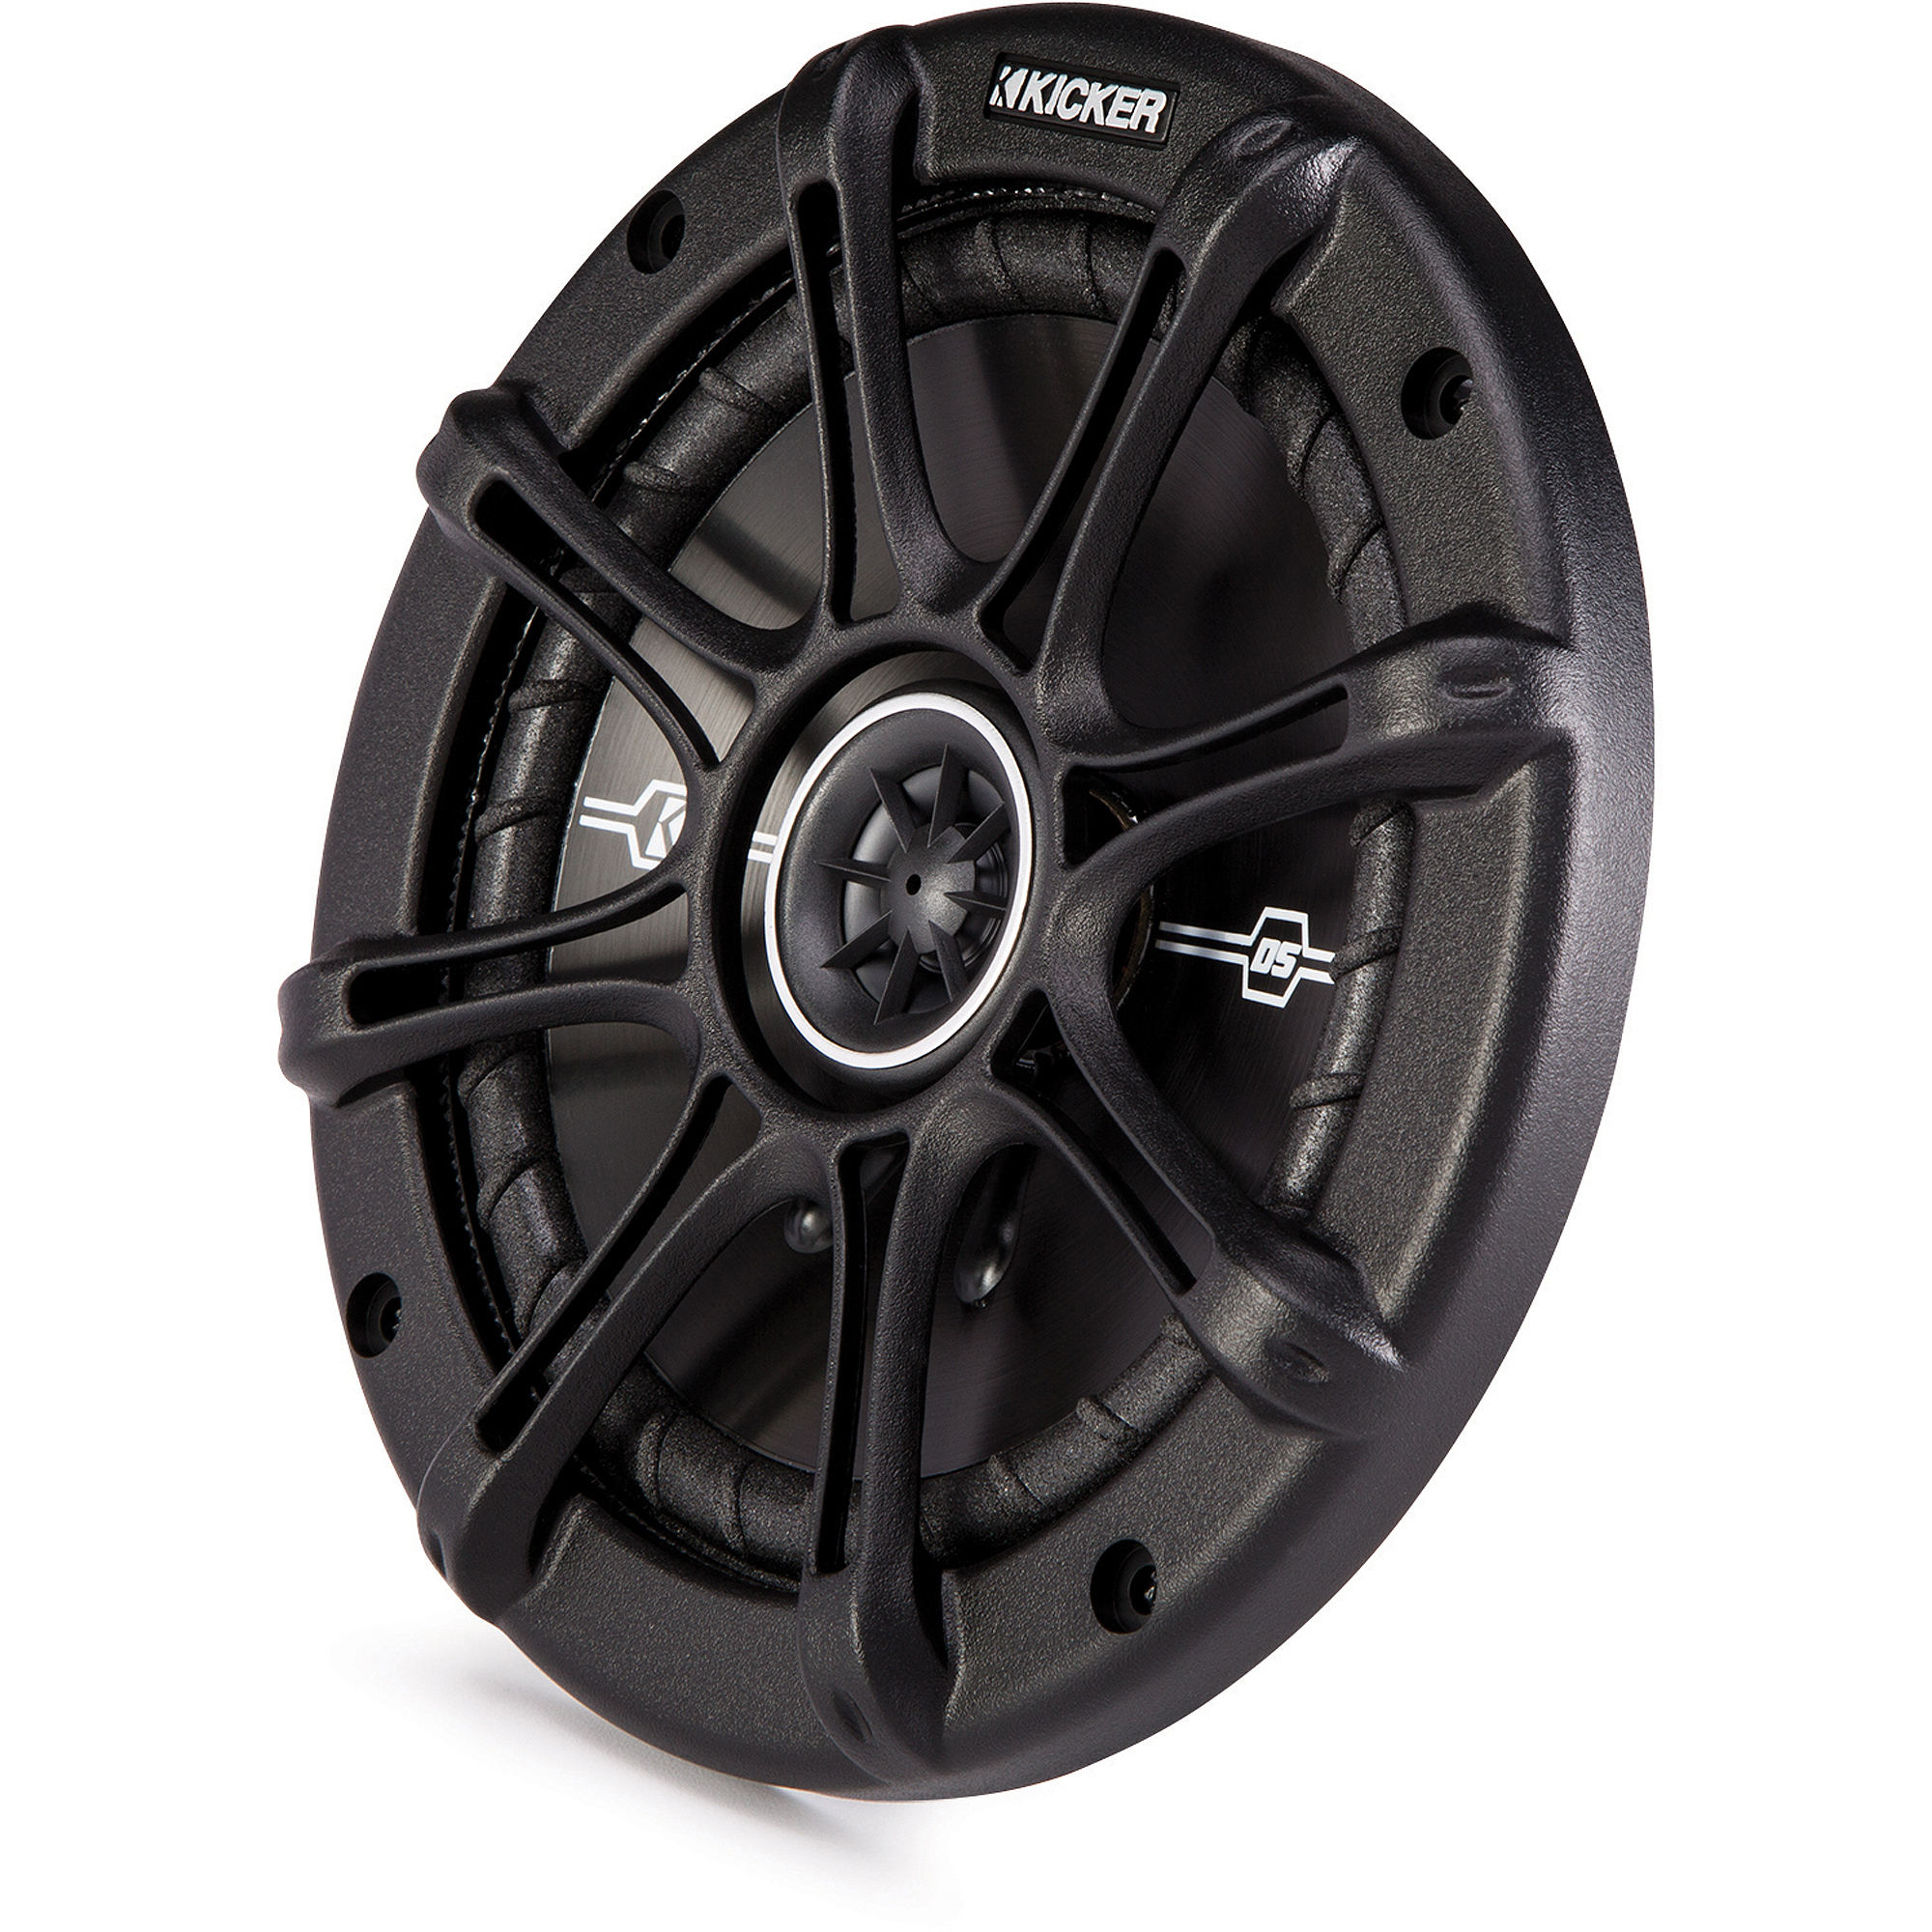 "Kicker DSC654 6.5"" Coaxial Speakers with 1/2"" Tweeters"